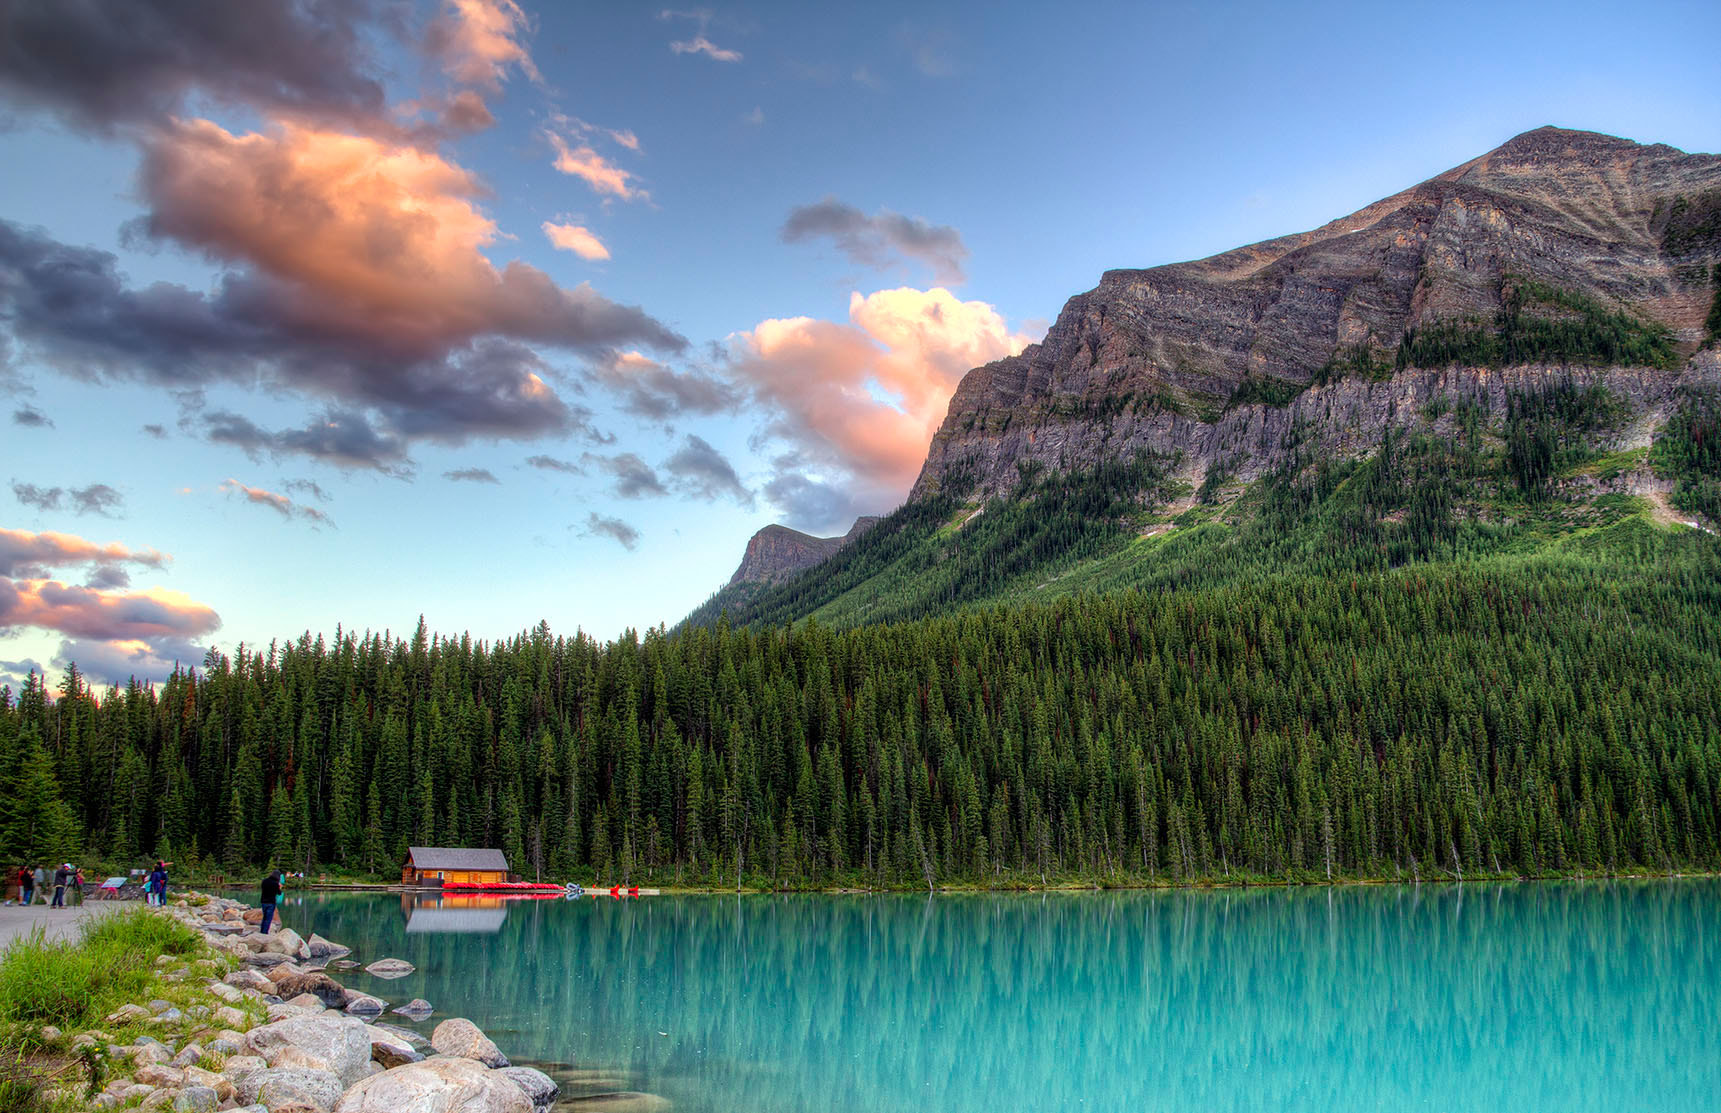 Photograph BANFF! by Michael Wifall on 500px